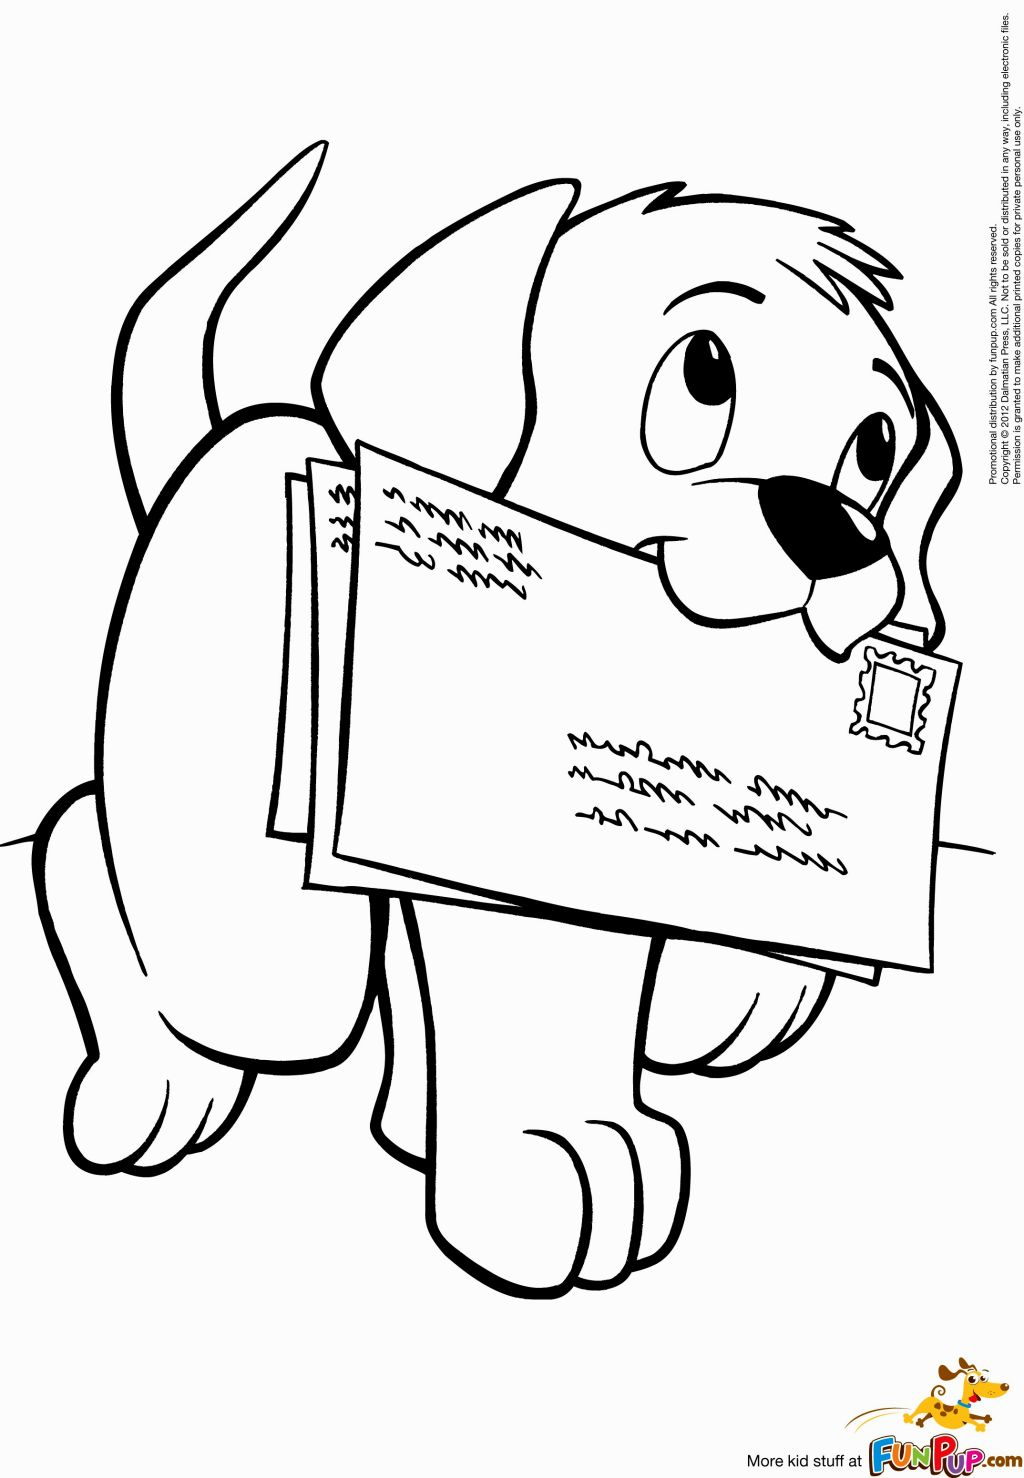 Little Puppy Coloring Pages Cute Puppy Coloring Pages Coloring Pages